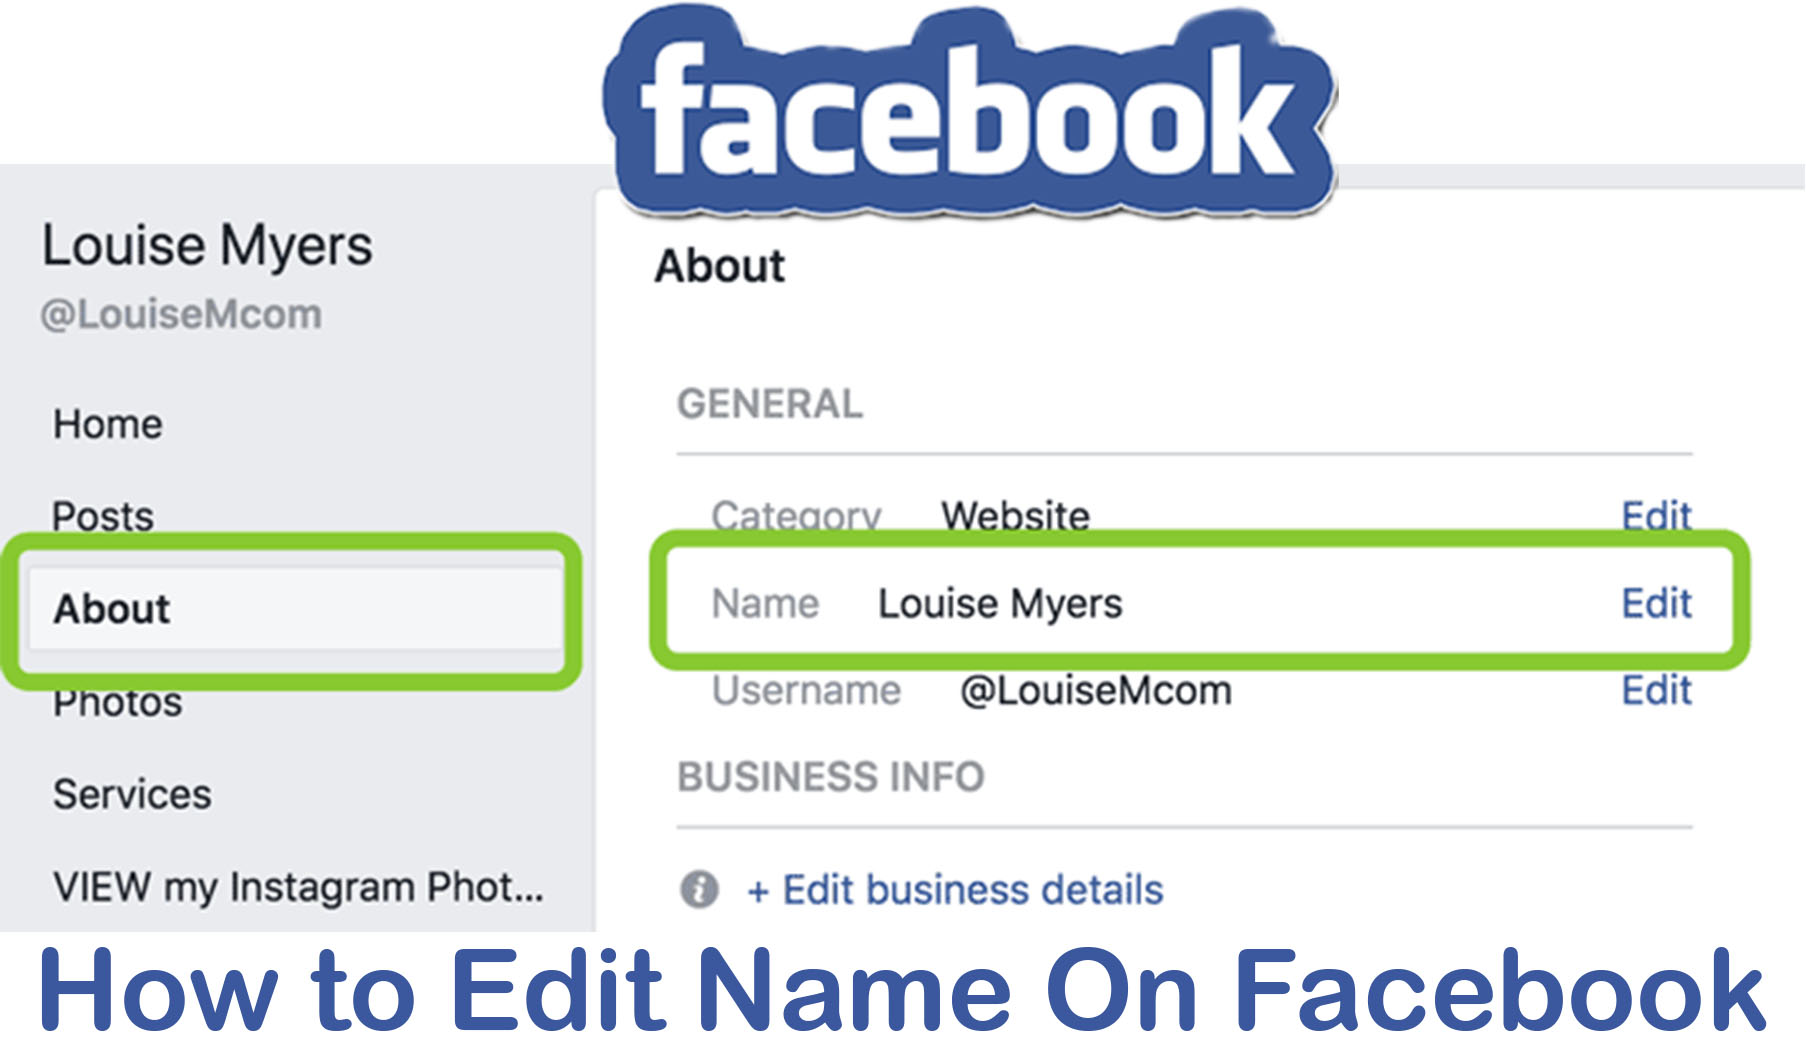 How to Edit Name On Facebook - Add Name on Facebook